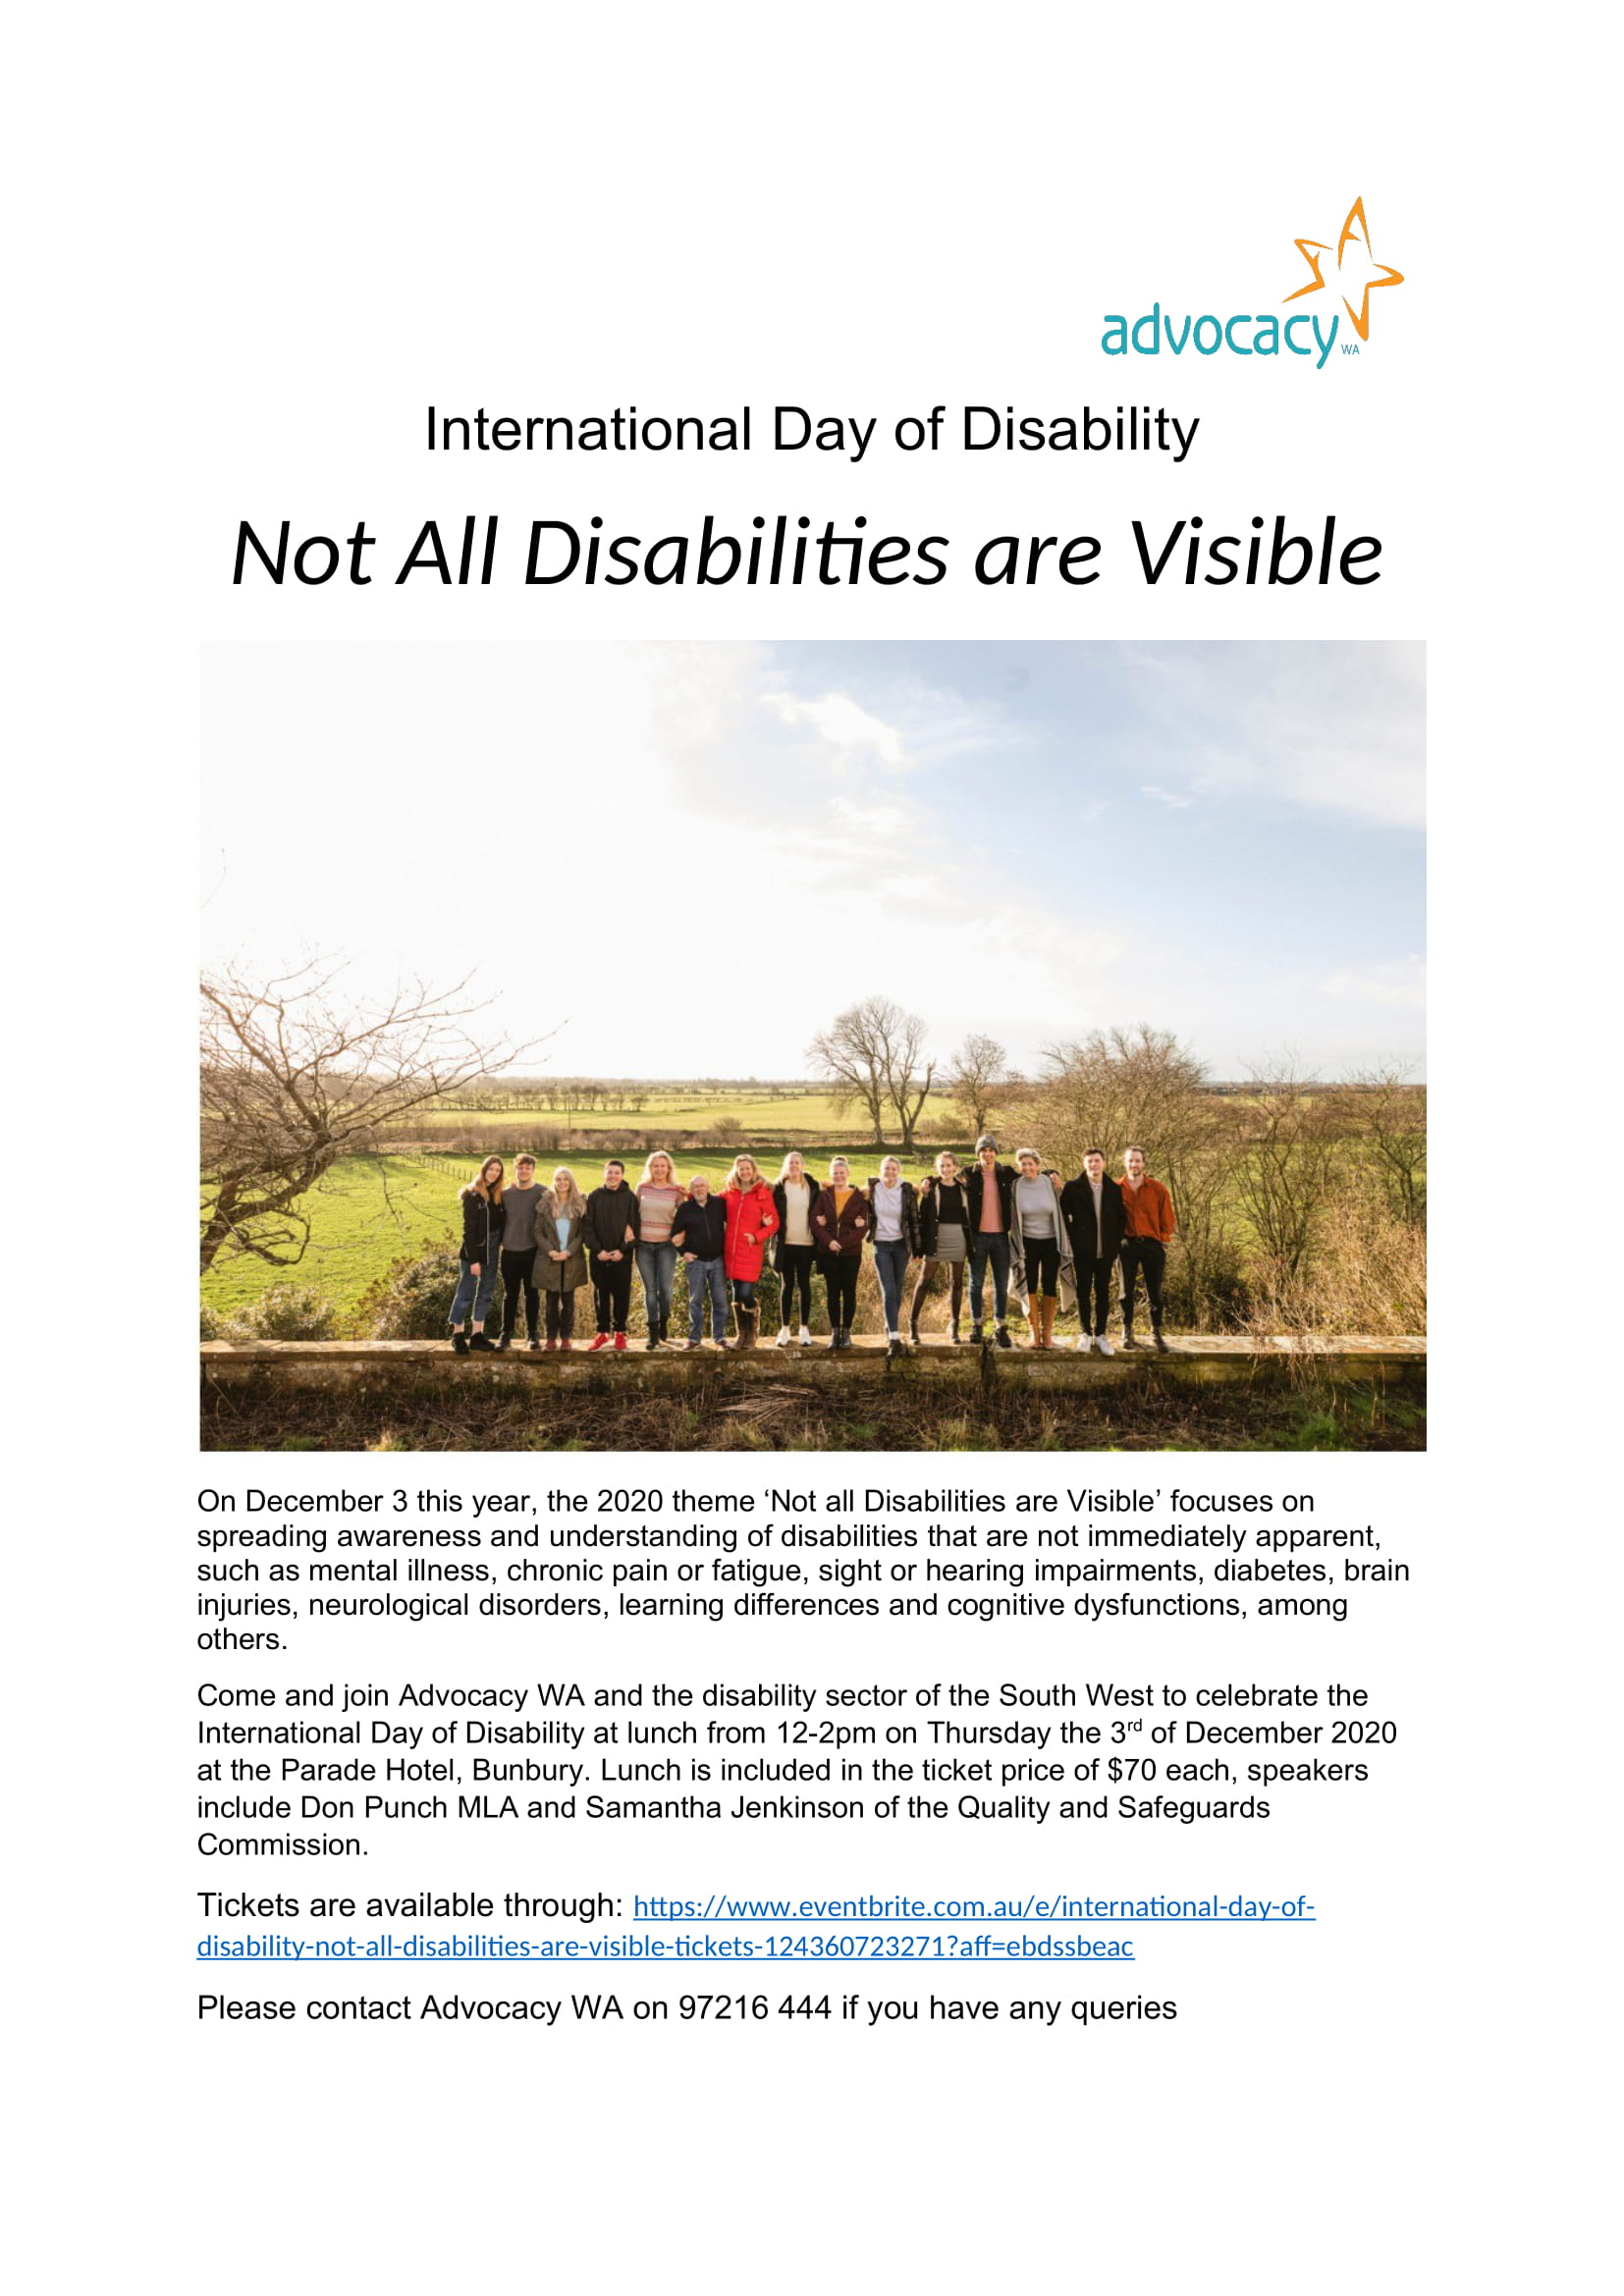 International Day of Disability Lunch Flyer 2020 004 1